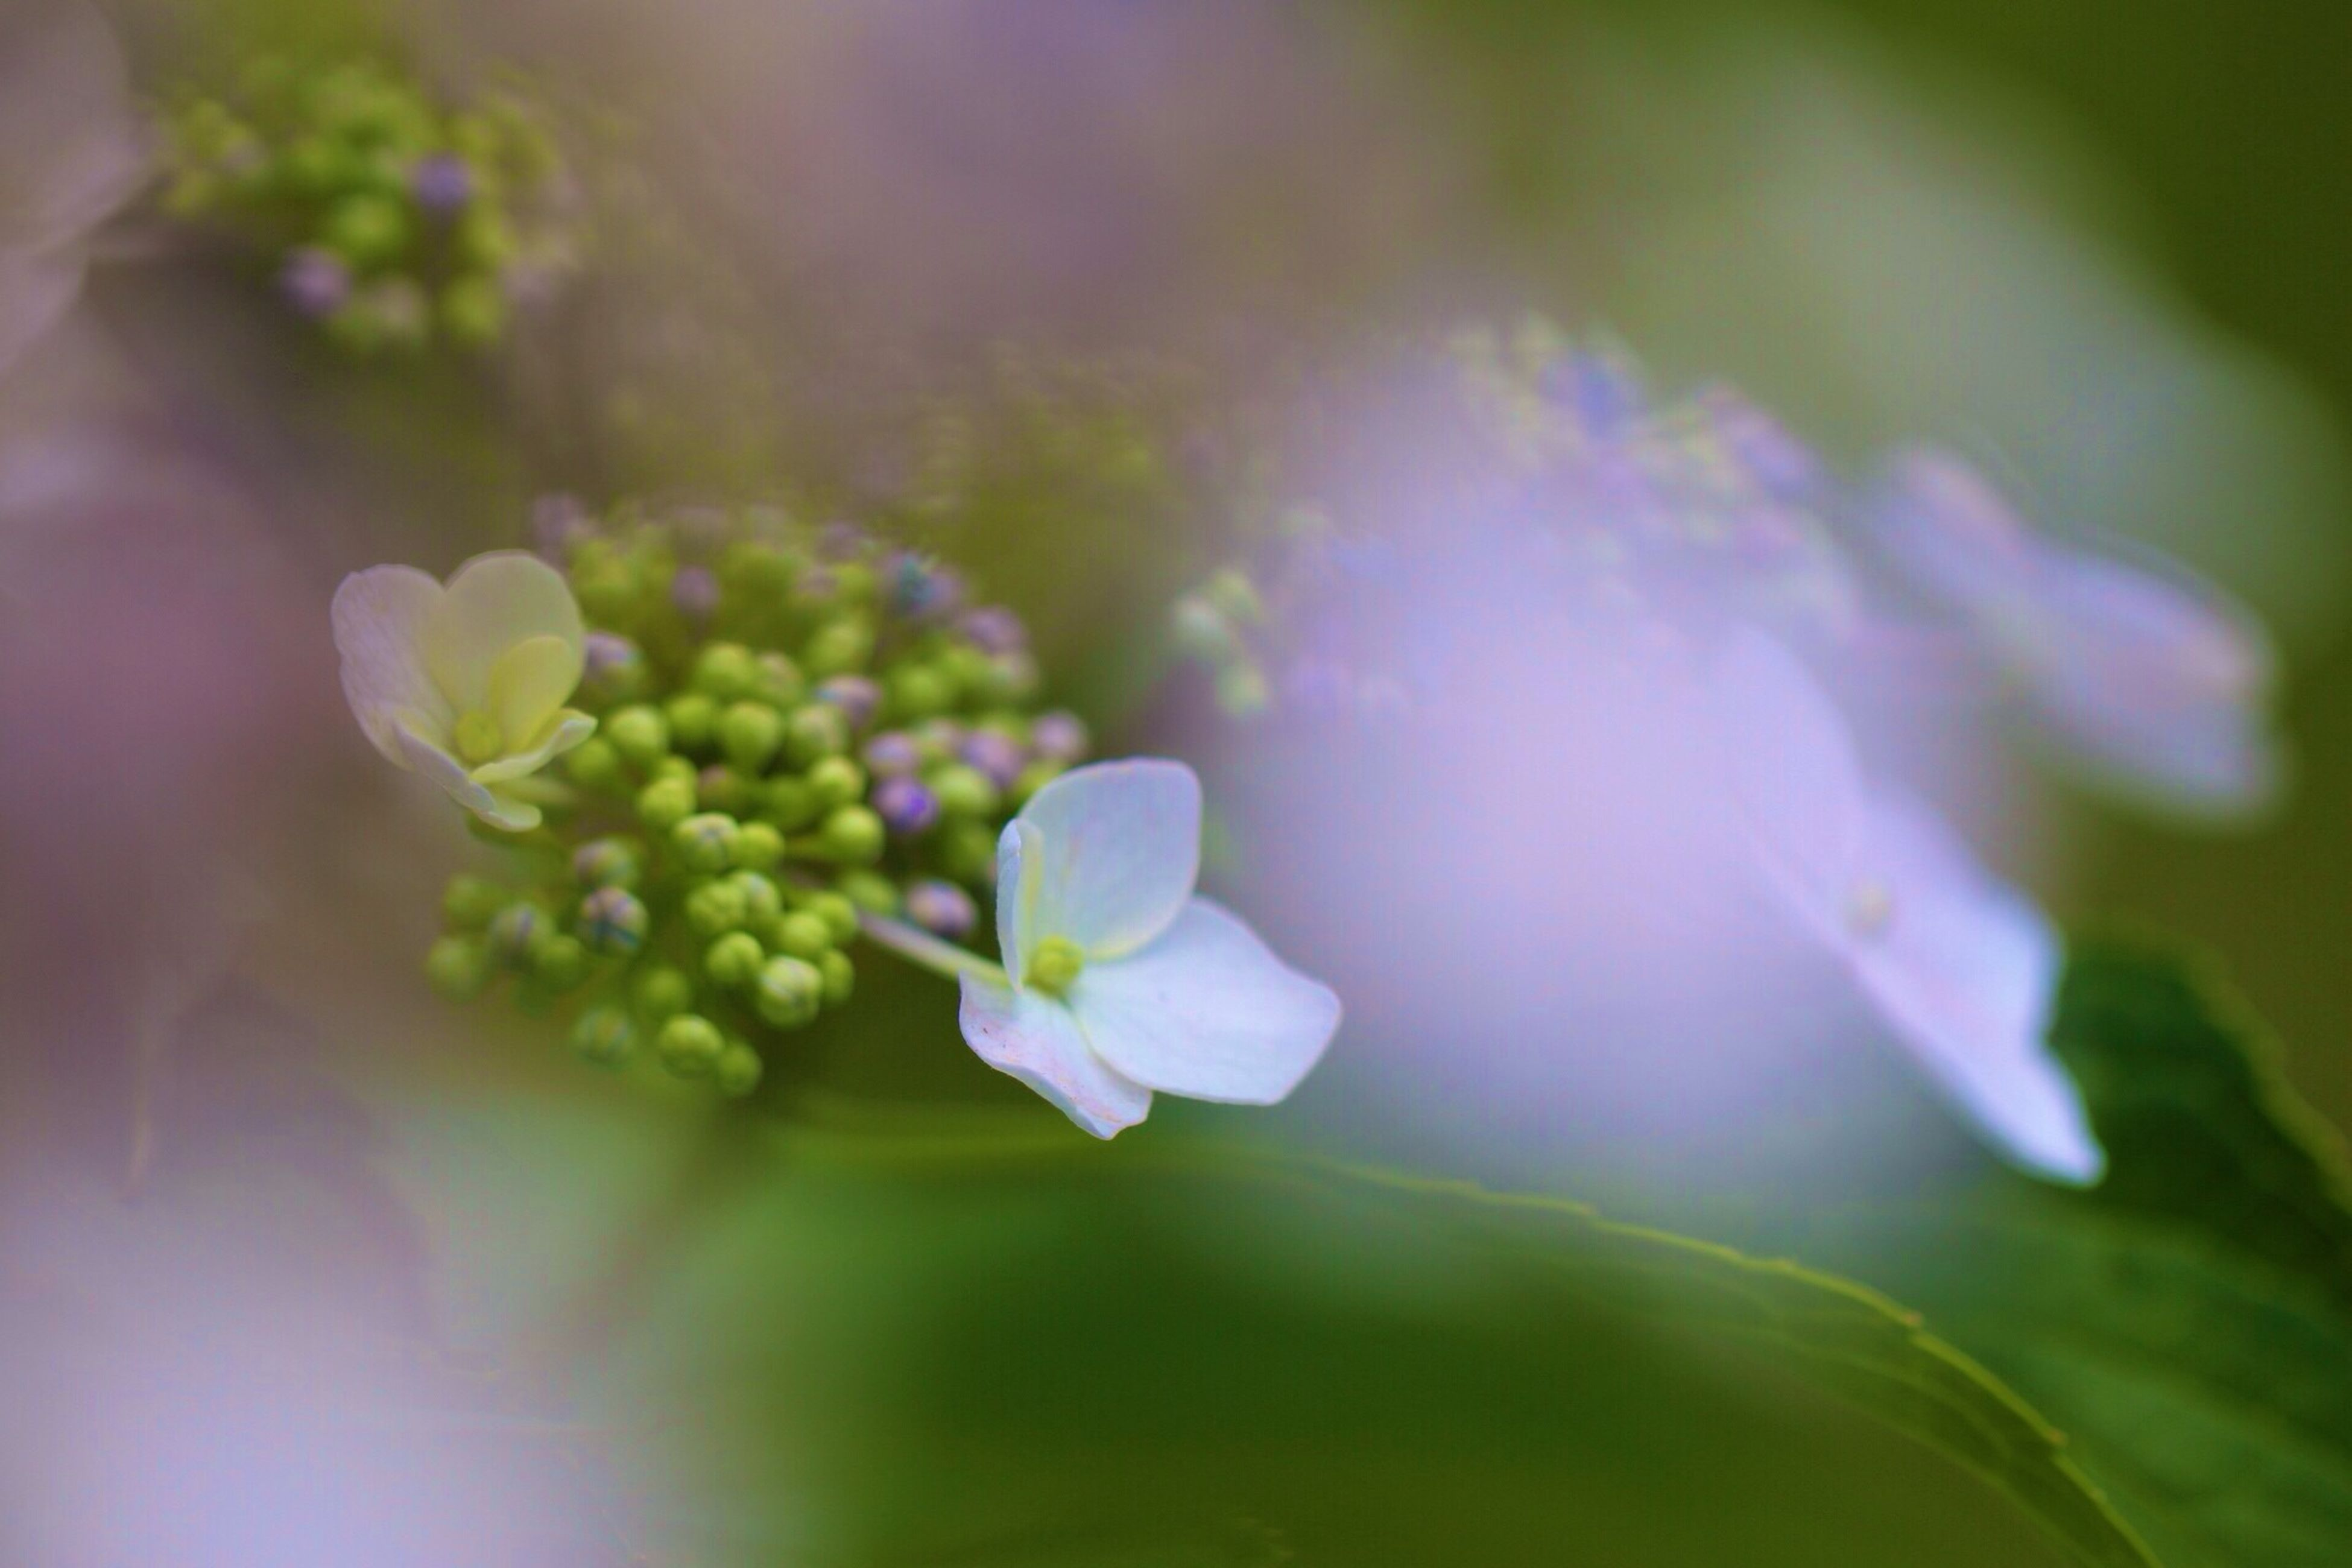 flower, freshness, petal, fragility, growth, flower head, beauty in nature, close-up, nature, blooming, selective focus, focus on foreground, plant, purple, in bloom, bud, blossom, springtime, pollen, botany